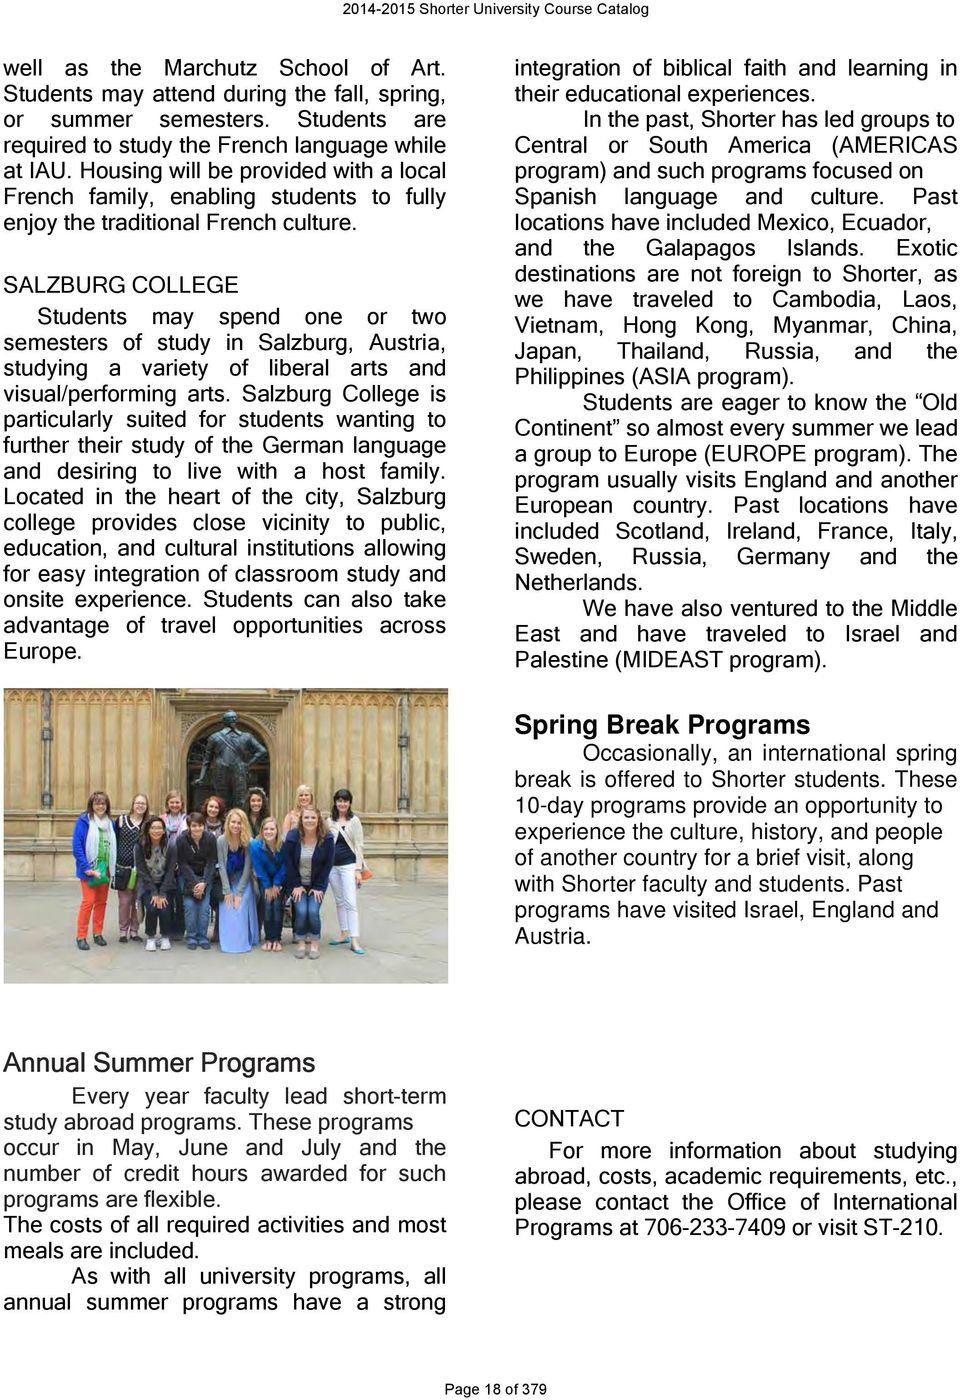 SALZBURG COLLEGE Students may spend one or two semesters of study in Salzburg, Austria, studying a variety of liberal arts and visual/performing arts.